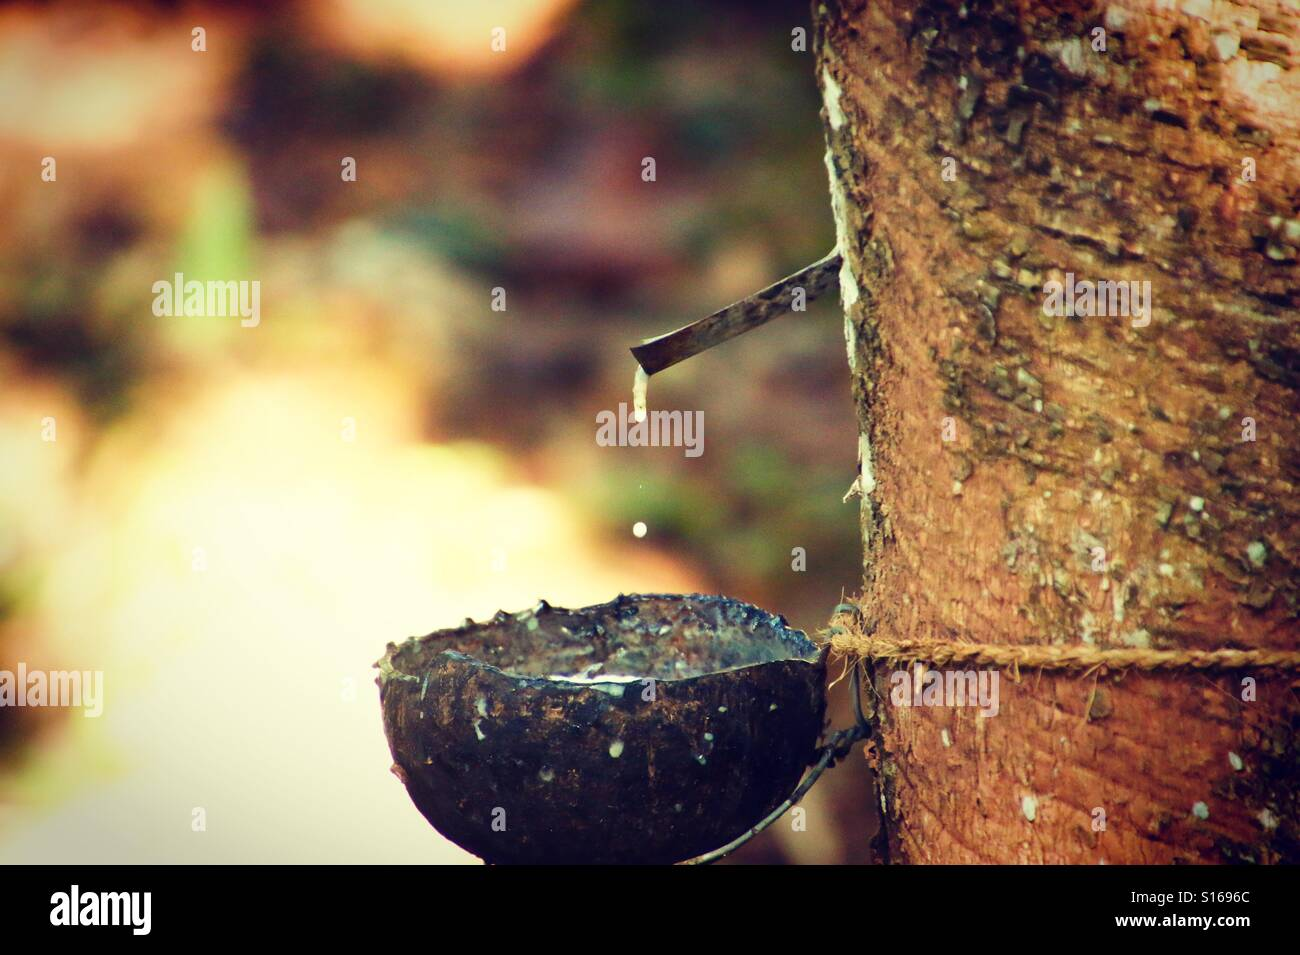 Rubber tapping kerala - Stock Image